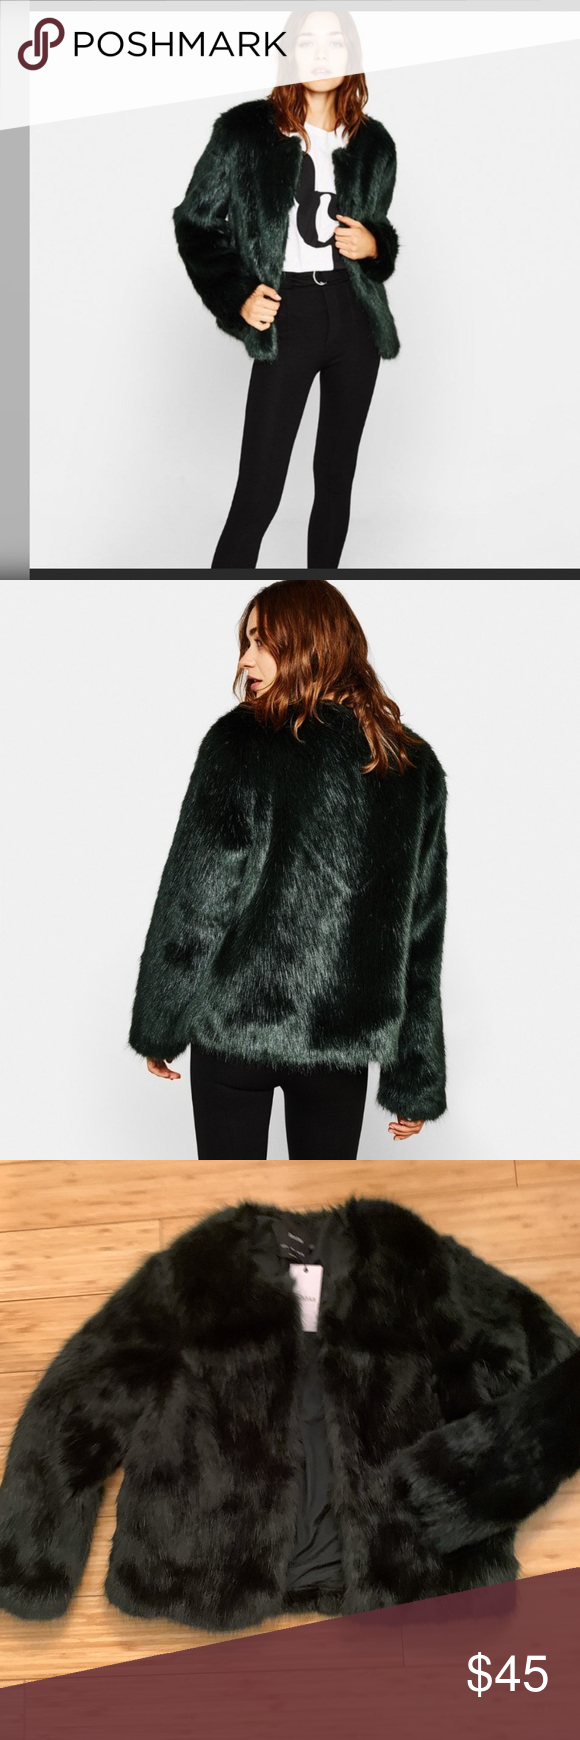 NWT Bershka Green Faux Fur Coat This gorgeous on trend NWT faux fur coat in exce…